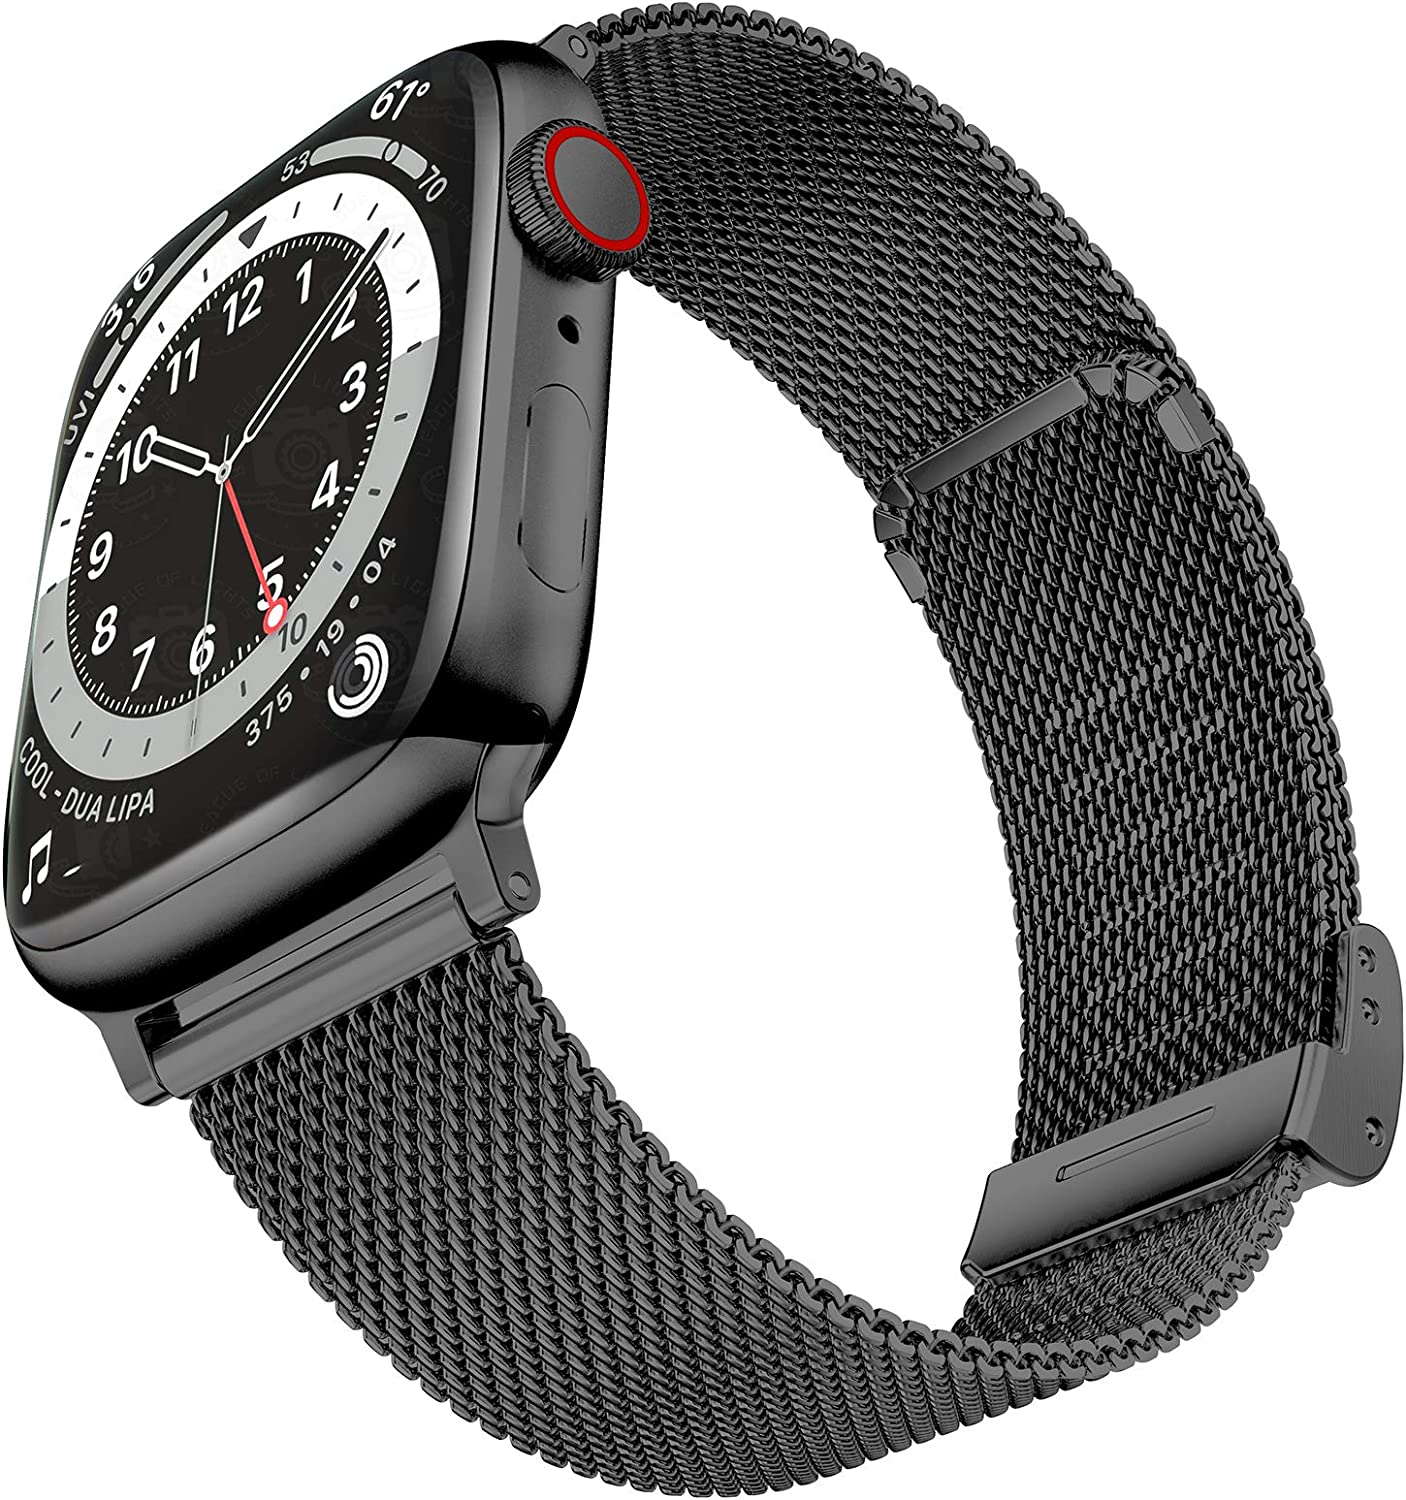 Geoumy Bands Compatible with Apple Watch Band 42mm 44mm, Stainless Steel Milanese Mesh Loop Replacement Men Women Strap for iWatch Series SE/6/5/4/3/2/1,Black